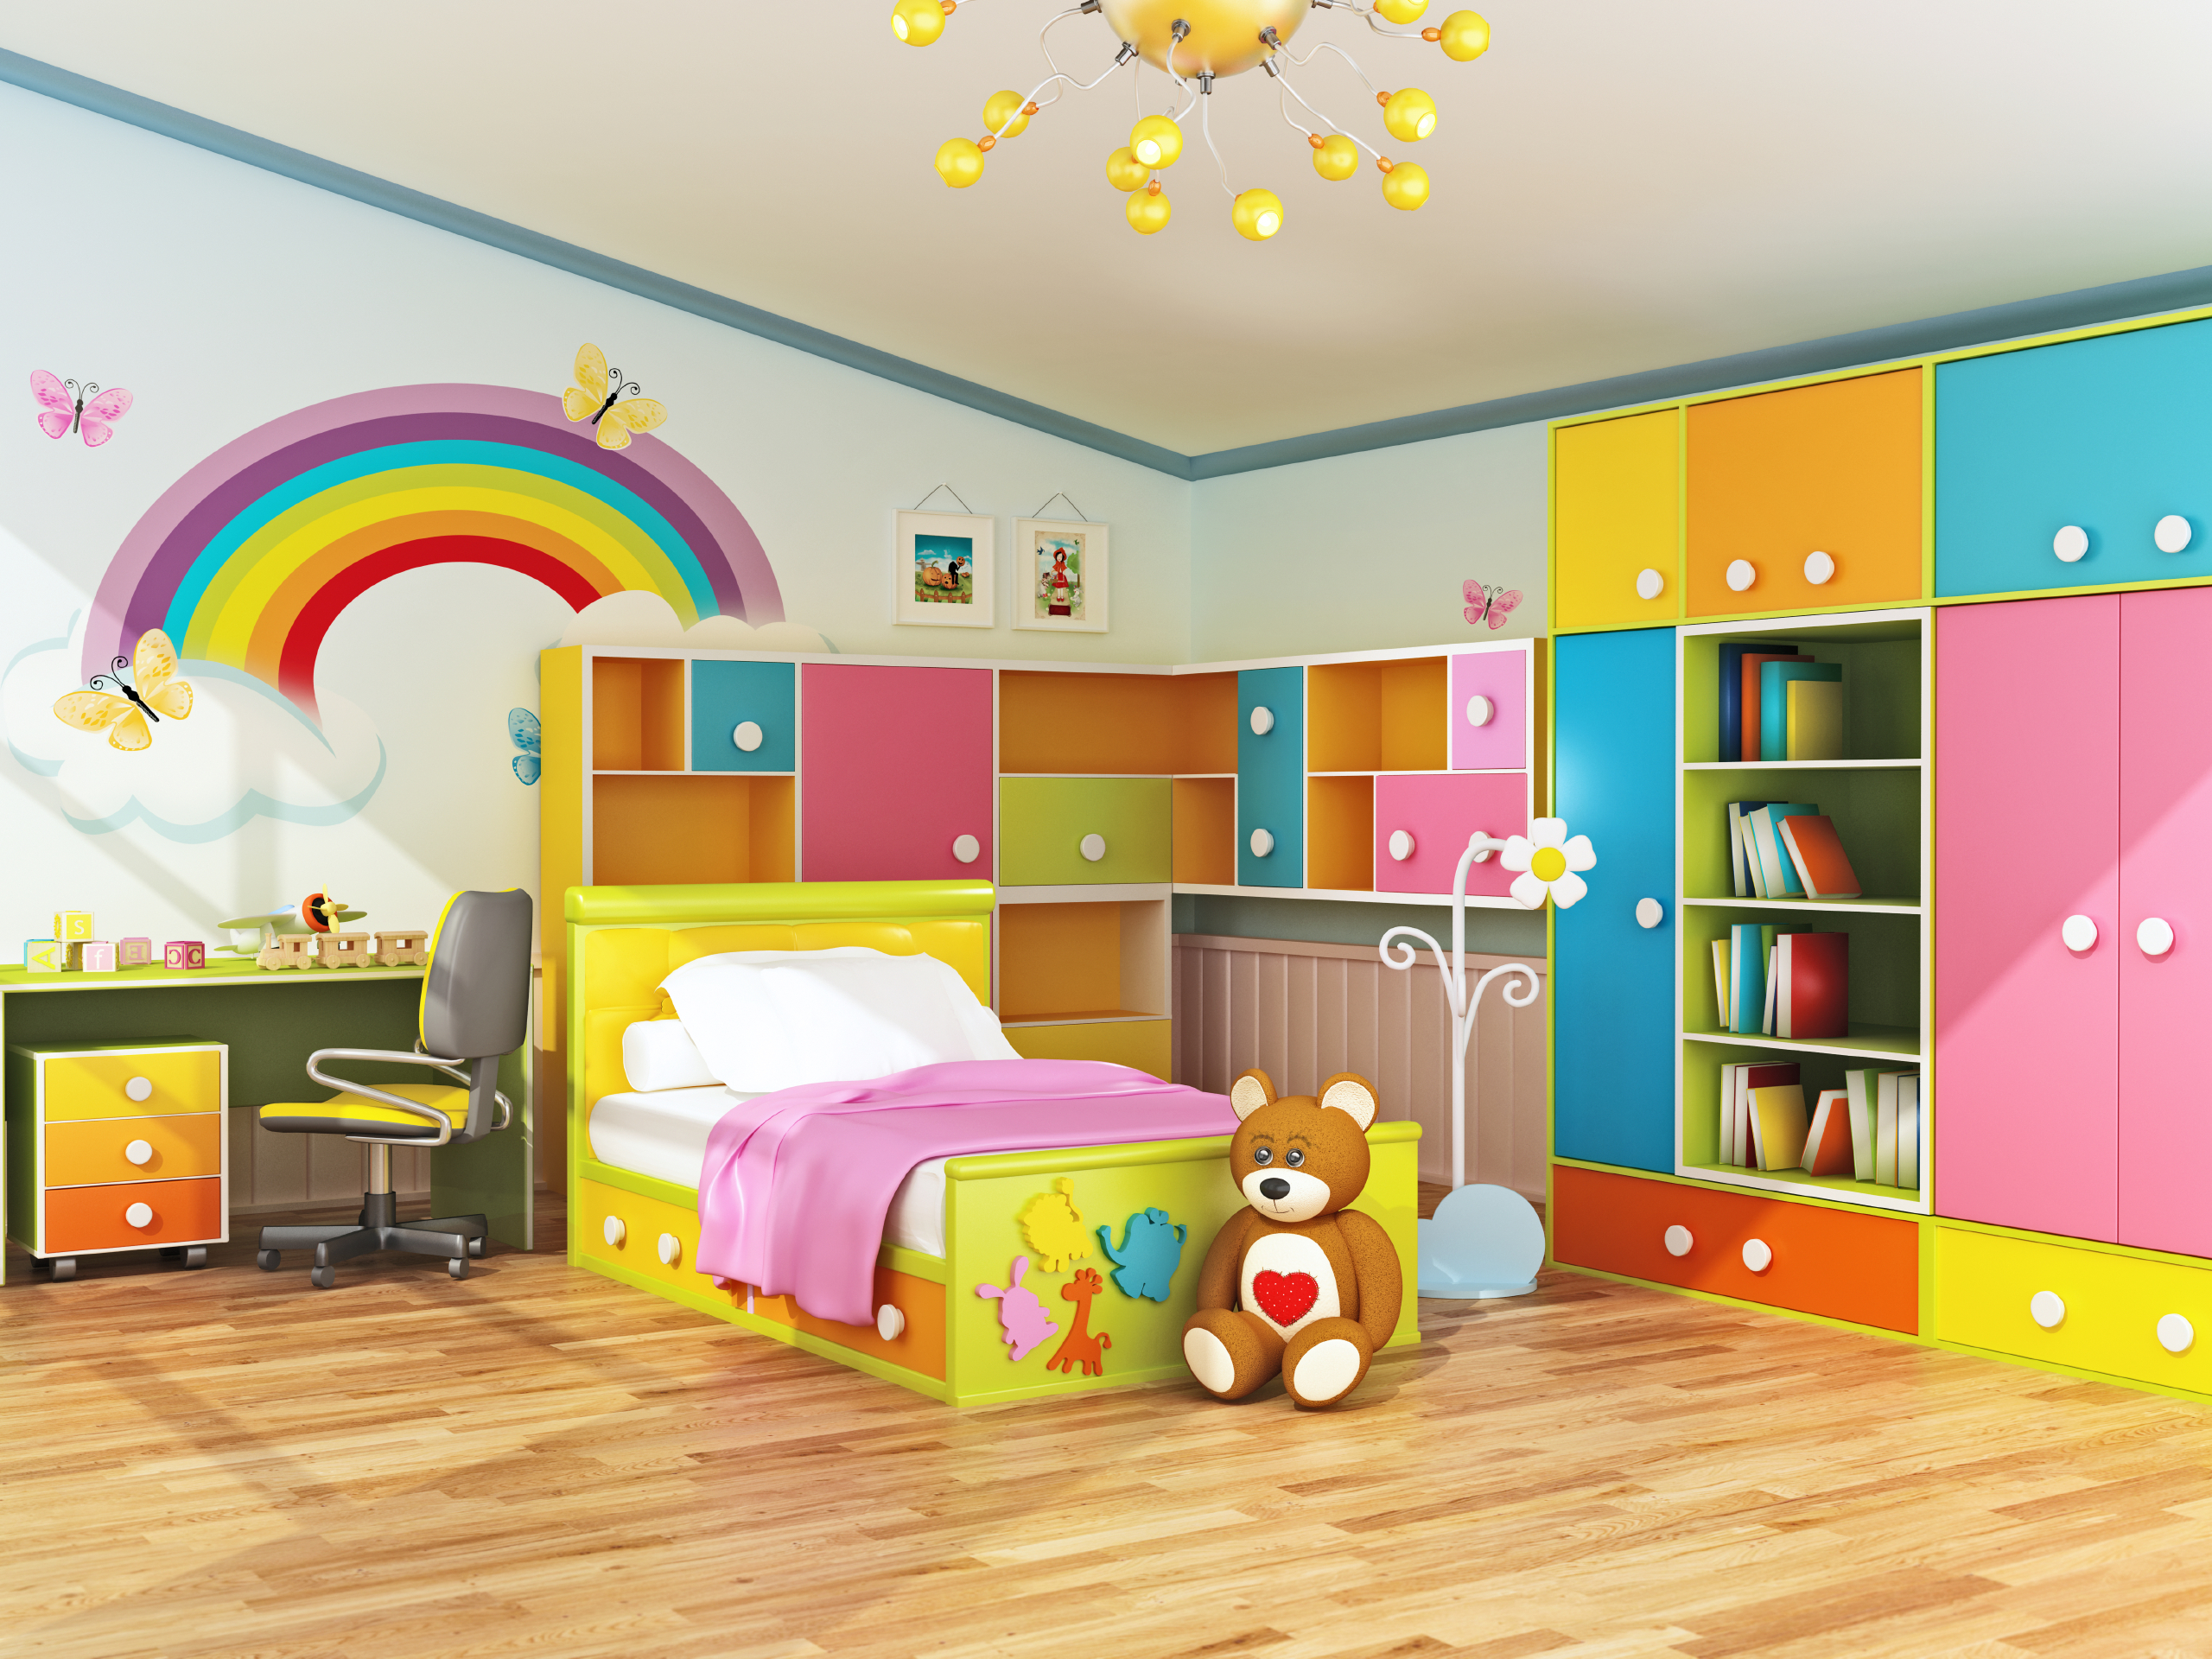 Plan Ahead When Decorating Kids' Bedrooms